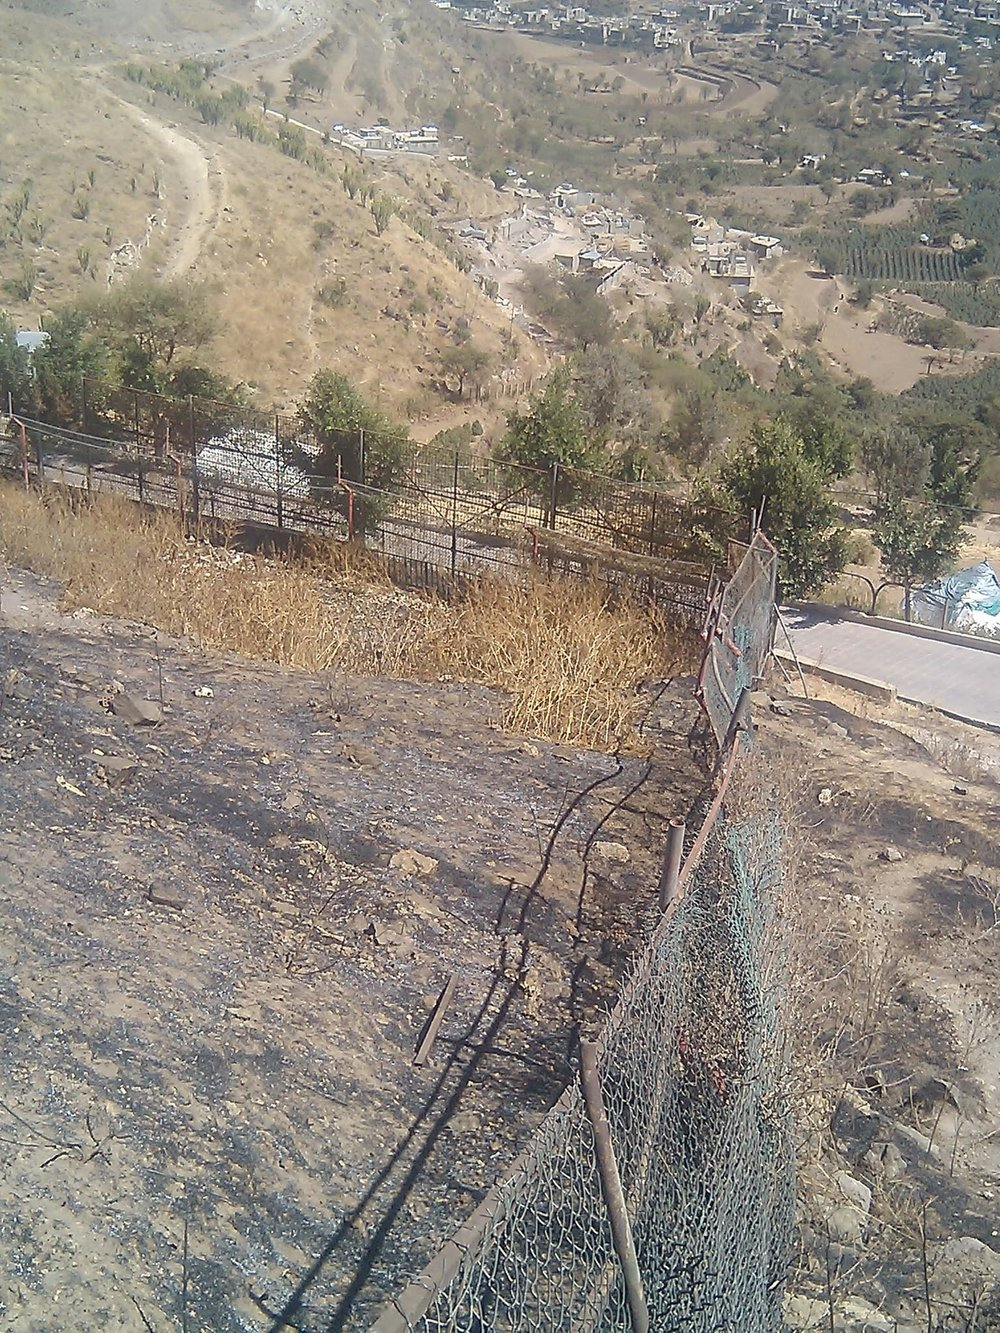 IBB ZO O LIONS OPEN RANGE enclosure with fecning to be repaired 17 FEB 2018 HAITHAM engineer.jpg